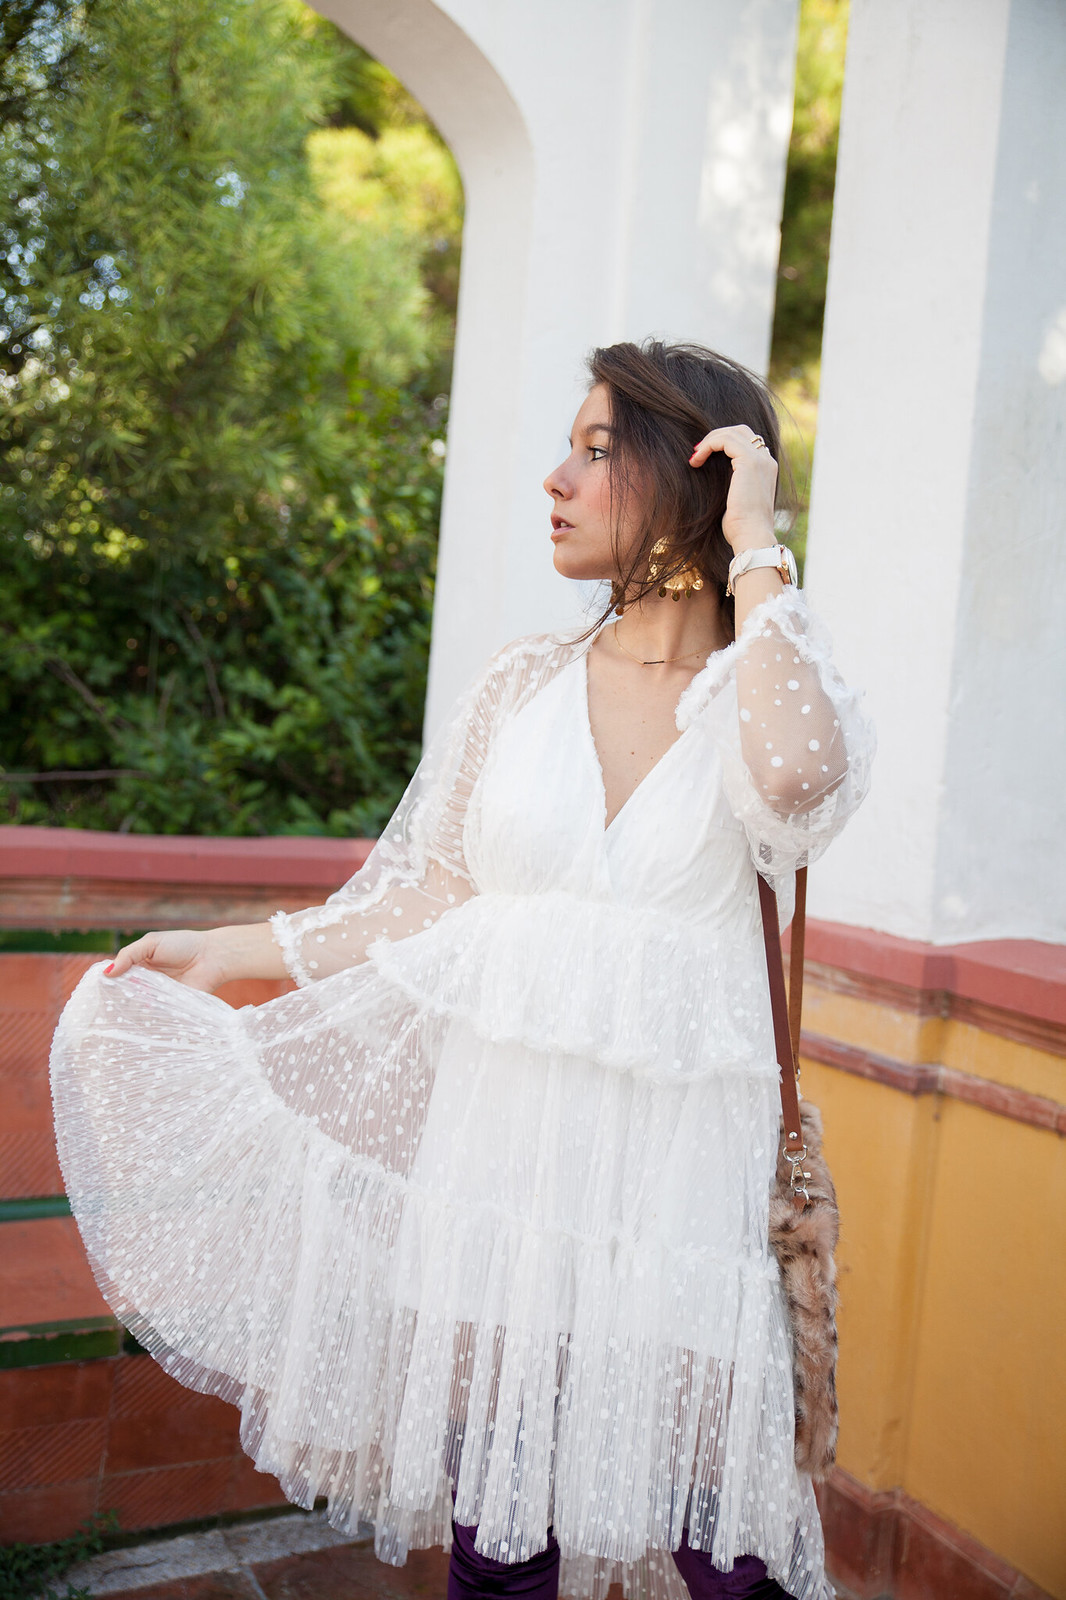 02_DANITY_BOHO_WHITE_DRESS_THEGUESTGIRL_AMBASSADOR_PARTY_DRESS_VESTIDOS_FIESTA_NAVIDADES_TENDENCIA